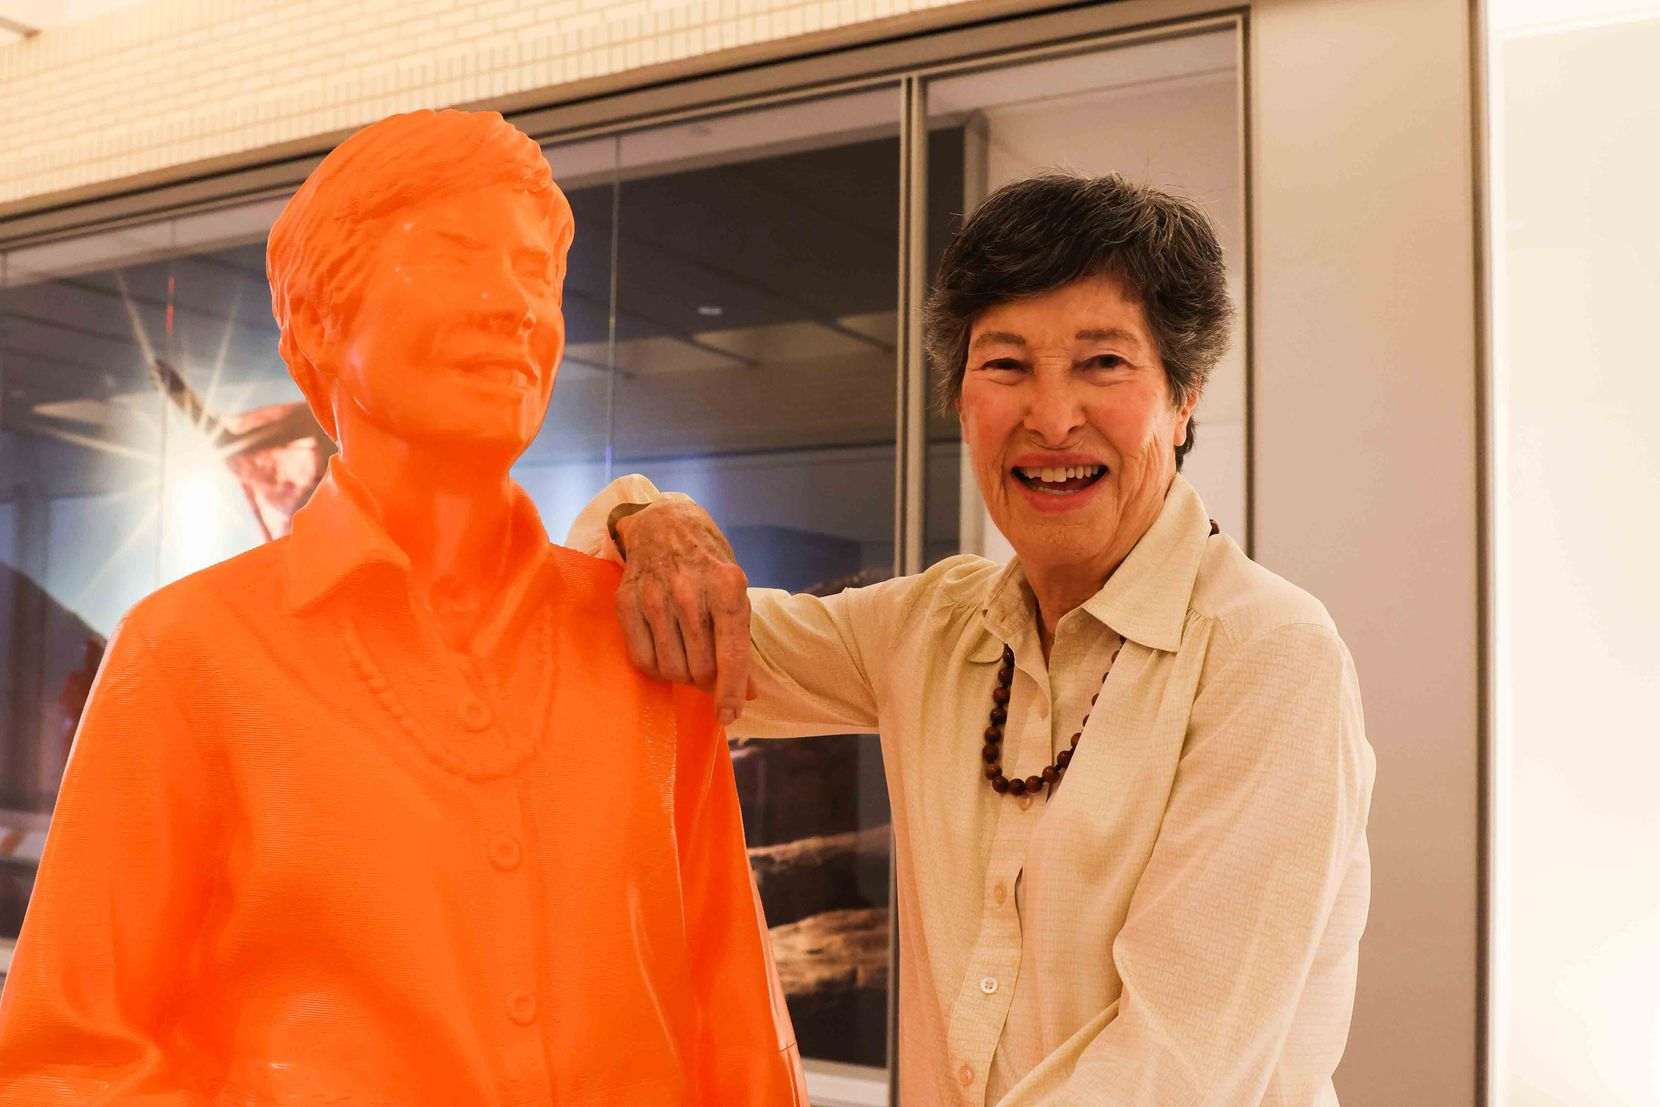 Lyda Hill, founder of Lyda Hill Philanthropies, poses next to the figure that represents her among the 121 sculptures of women featured in a NorthPark exhibit. Her foundation announced its Lone Star Prize Tuesday.